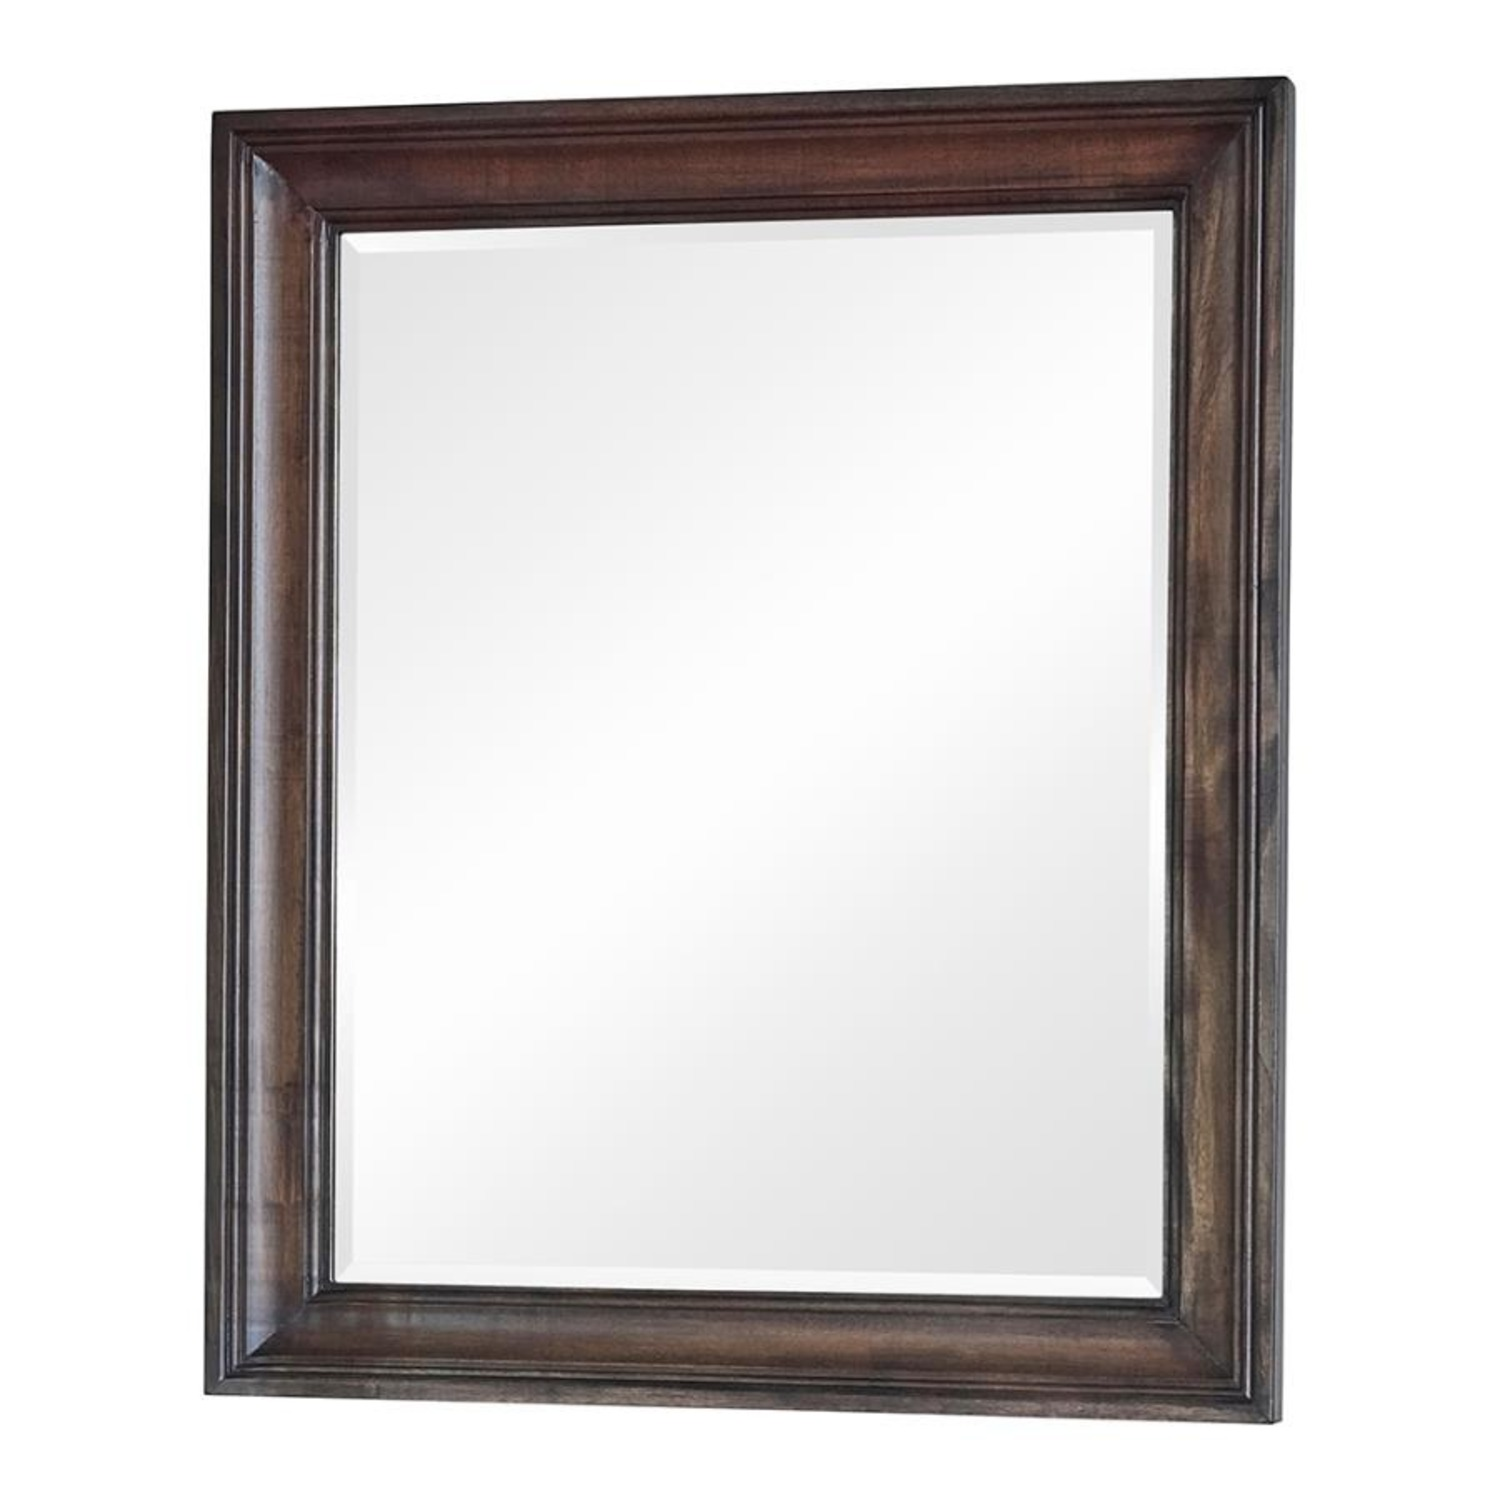 Vanity Mirror In Weathered Burnished Brown Finish - image-0